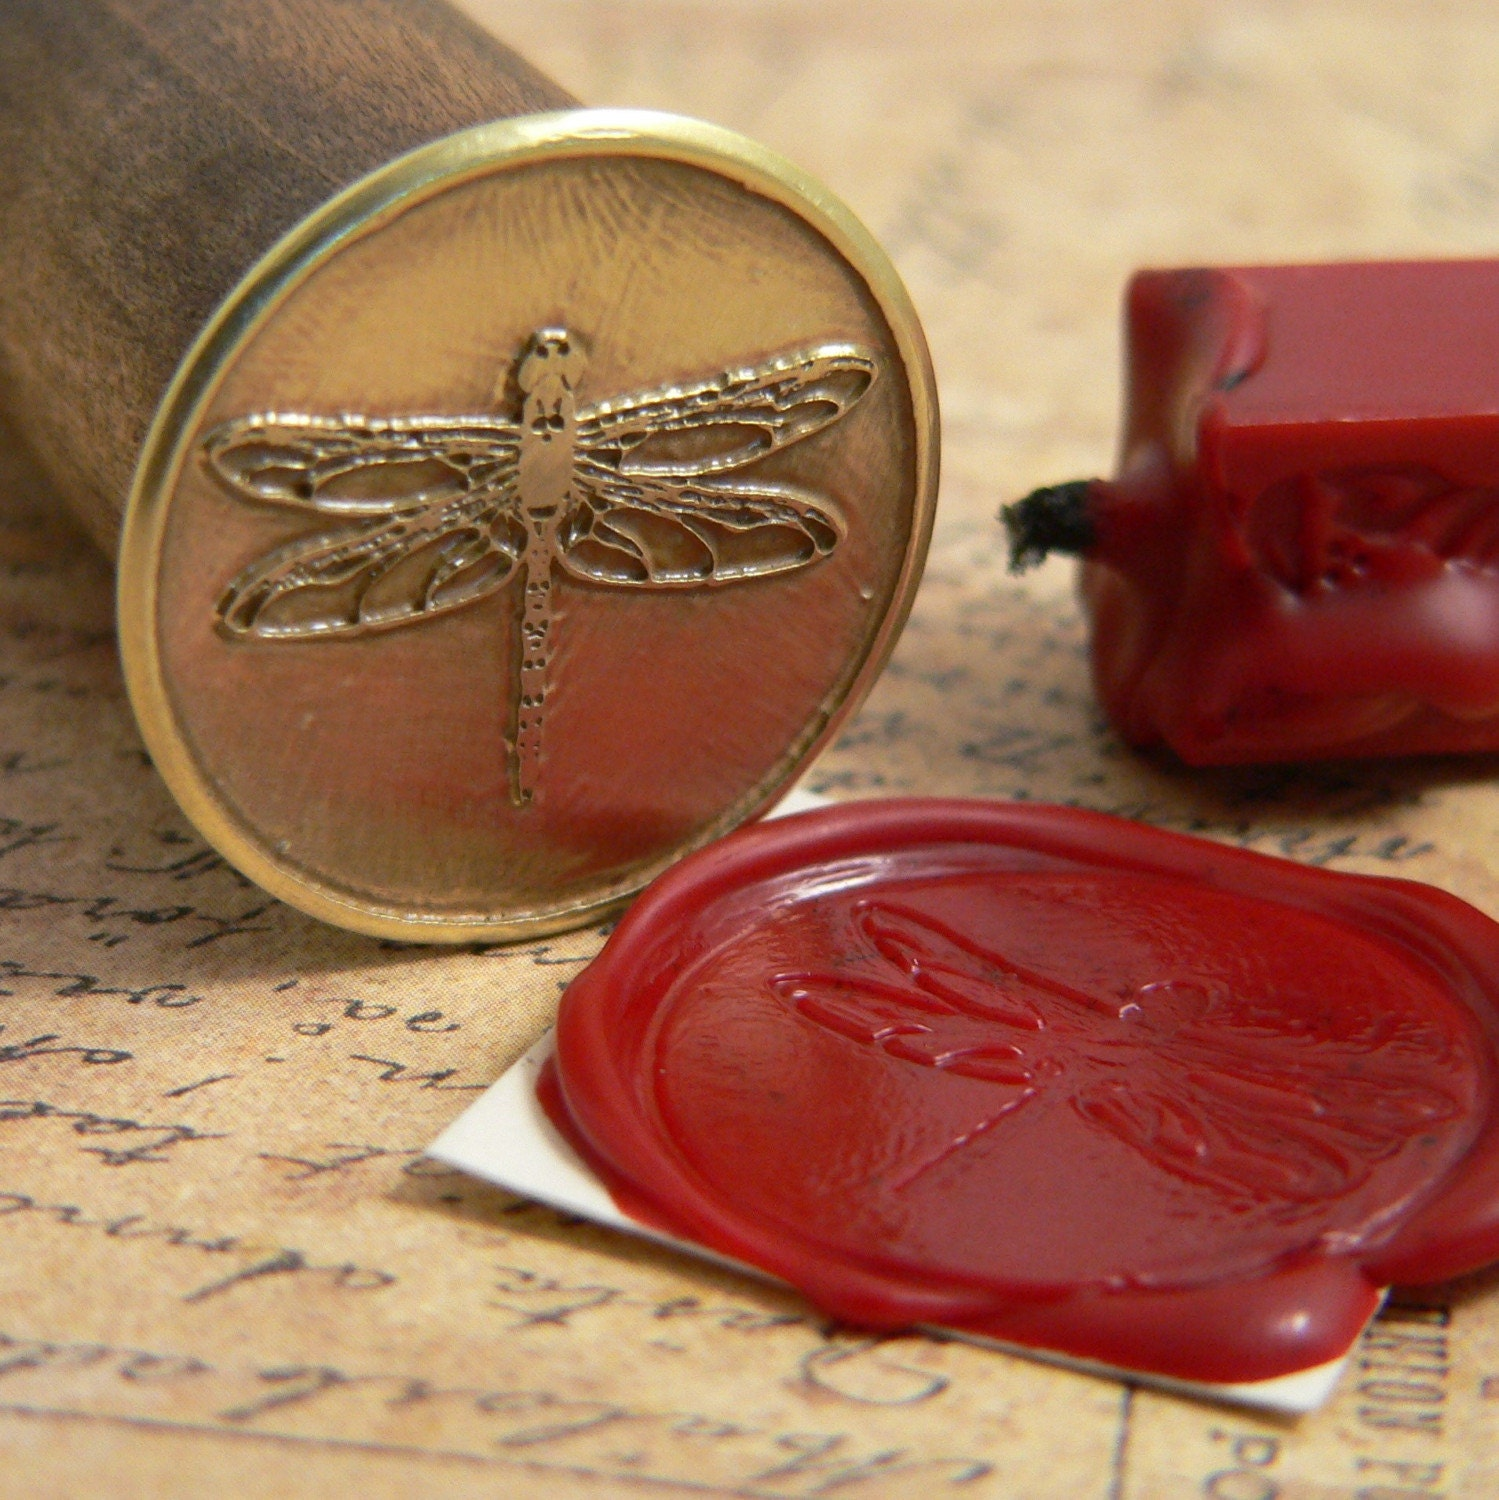 dragonfly wax seal stamp by istanbuldesigns on etsy